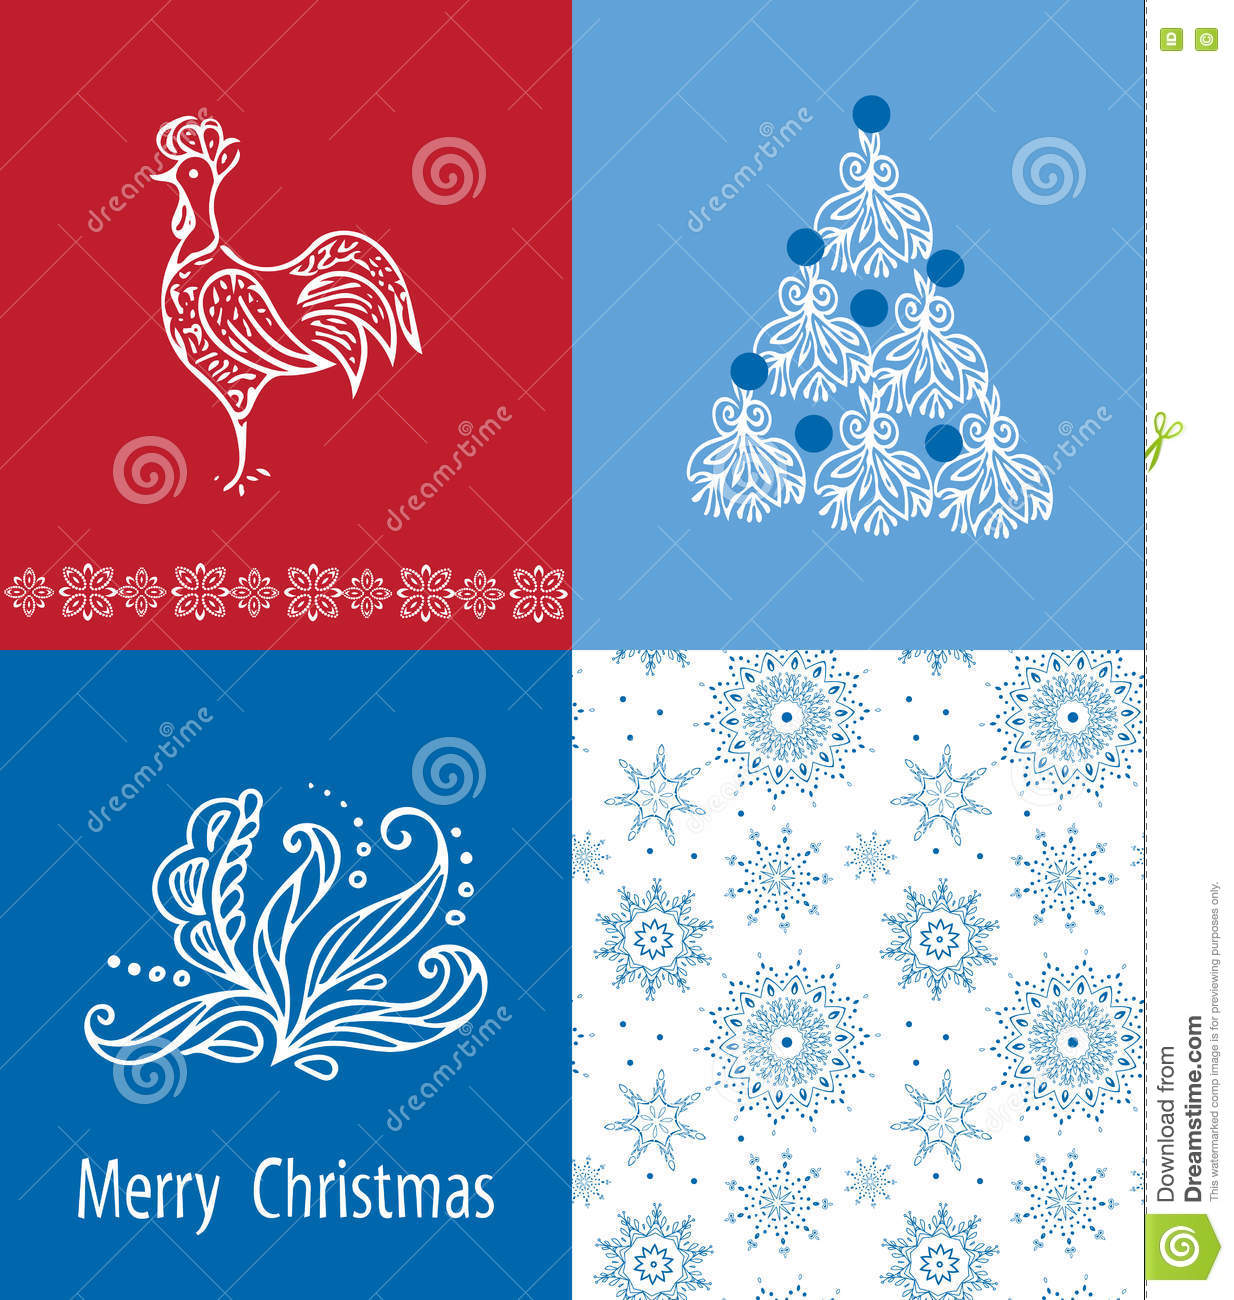 Christmas Cards Set 2017. Stock Vector - Image: 78209044